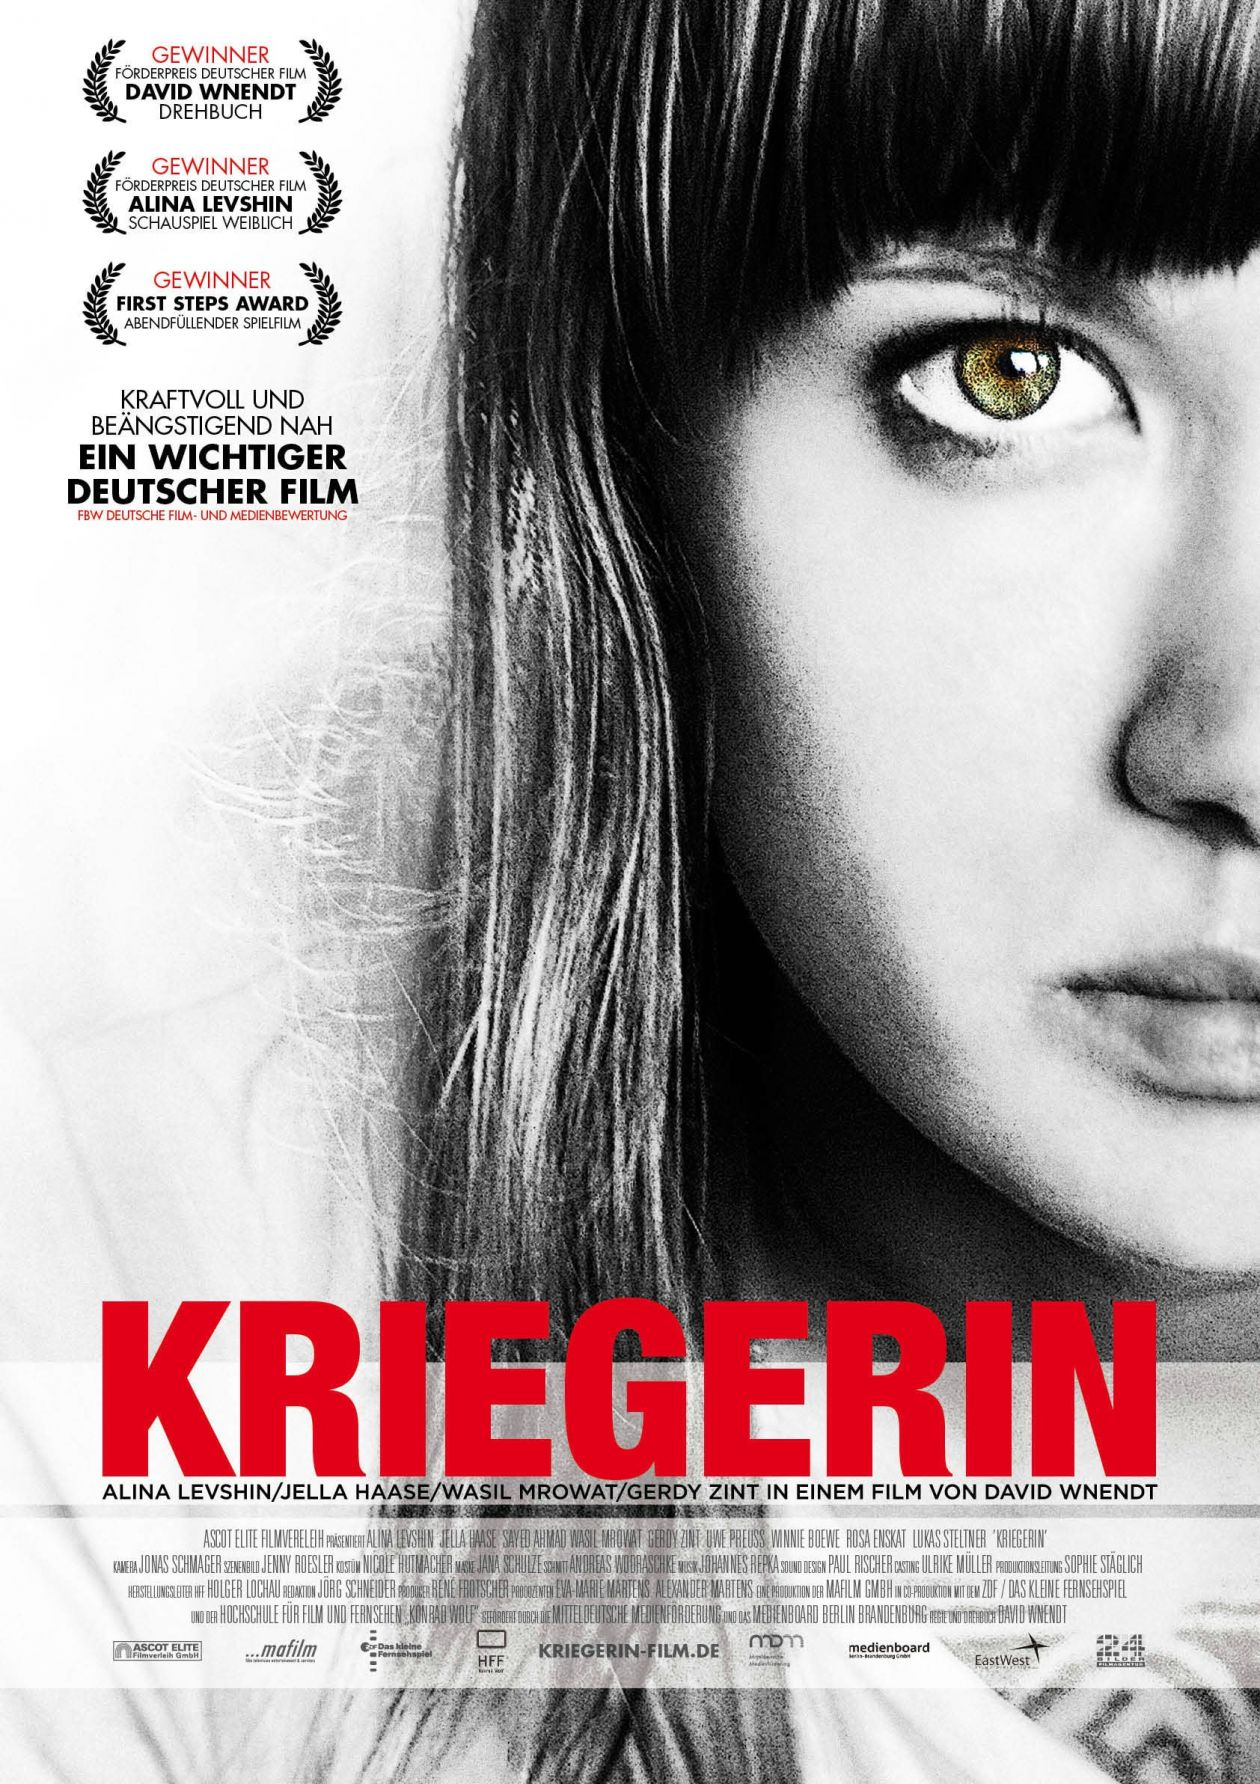 Alina Levshin best actress award / KRIEGERIN / GUERRIERE / COMBAT GIRLS / DAVID WNENDT MOVIE POSTER AFFICHE FILM